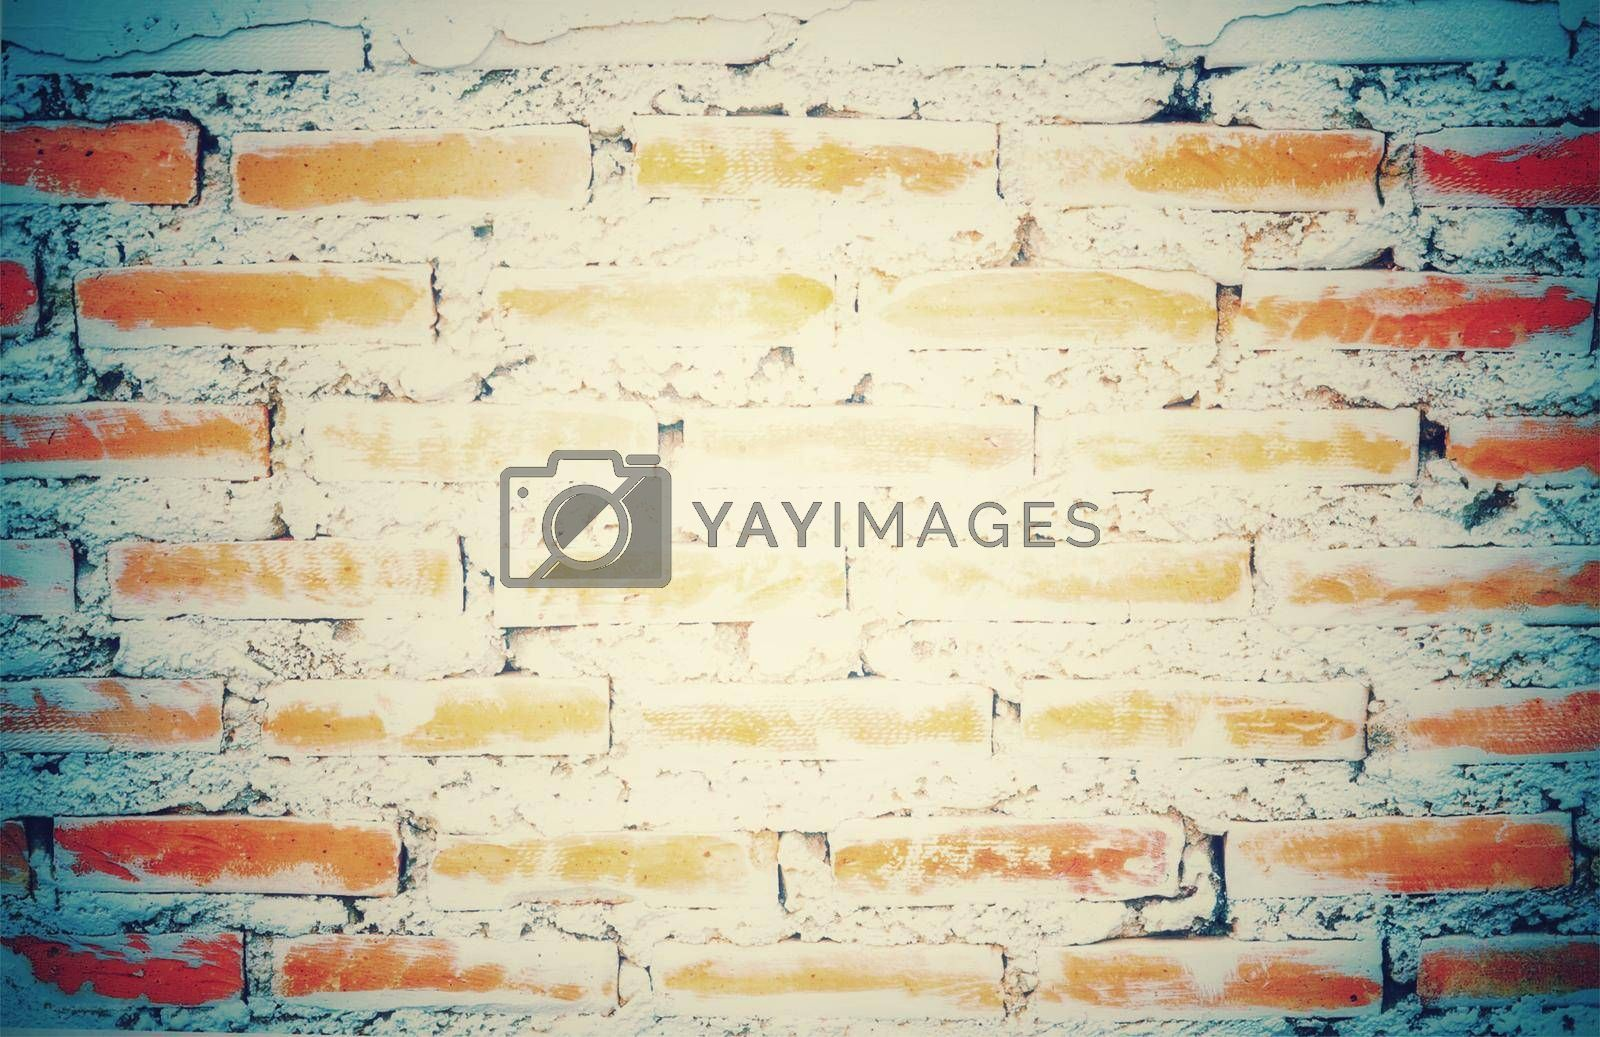 Vintage image old empty brick wall painted texture distressed red-brown wall wide grunge brick wall shabby building with damaged plaster abstract web banner copy space